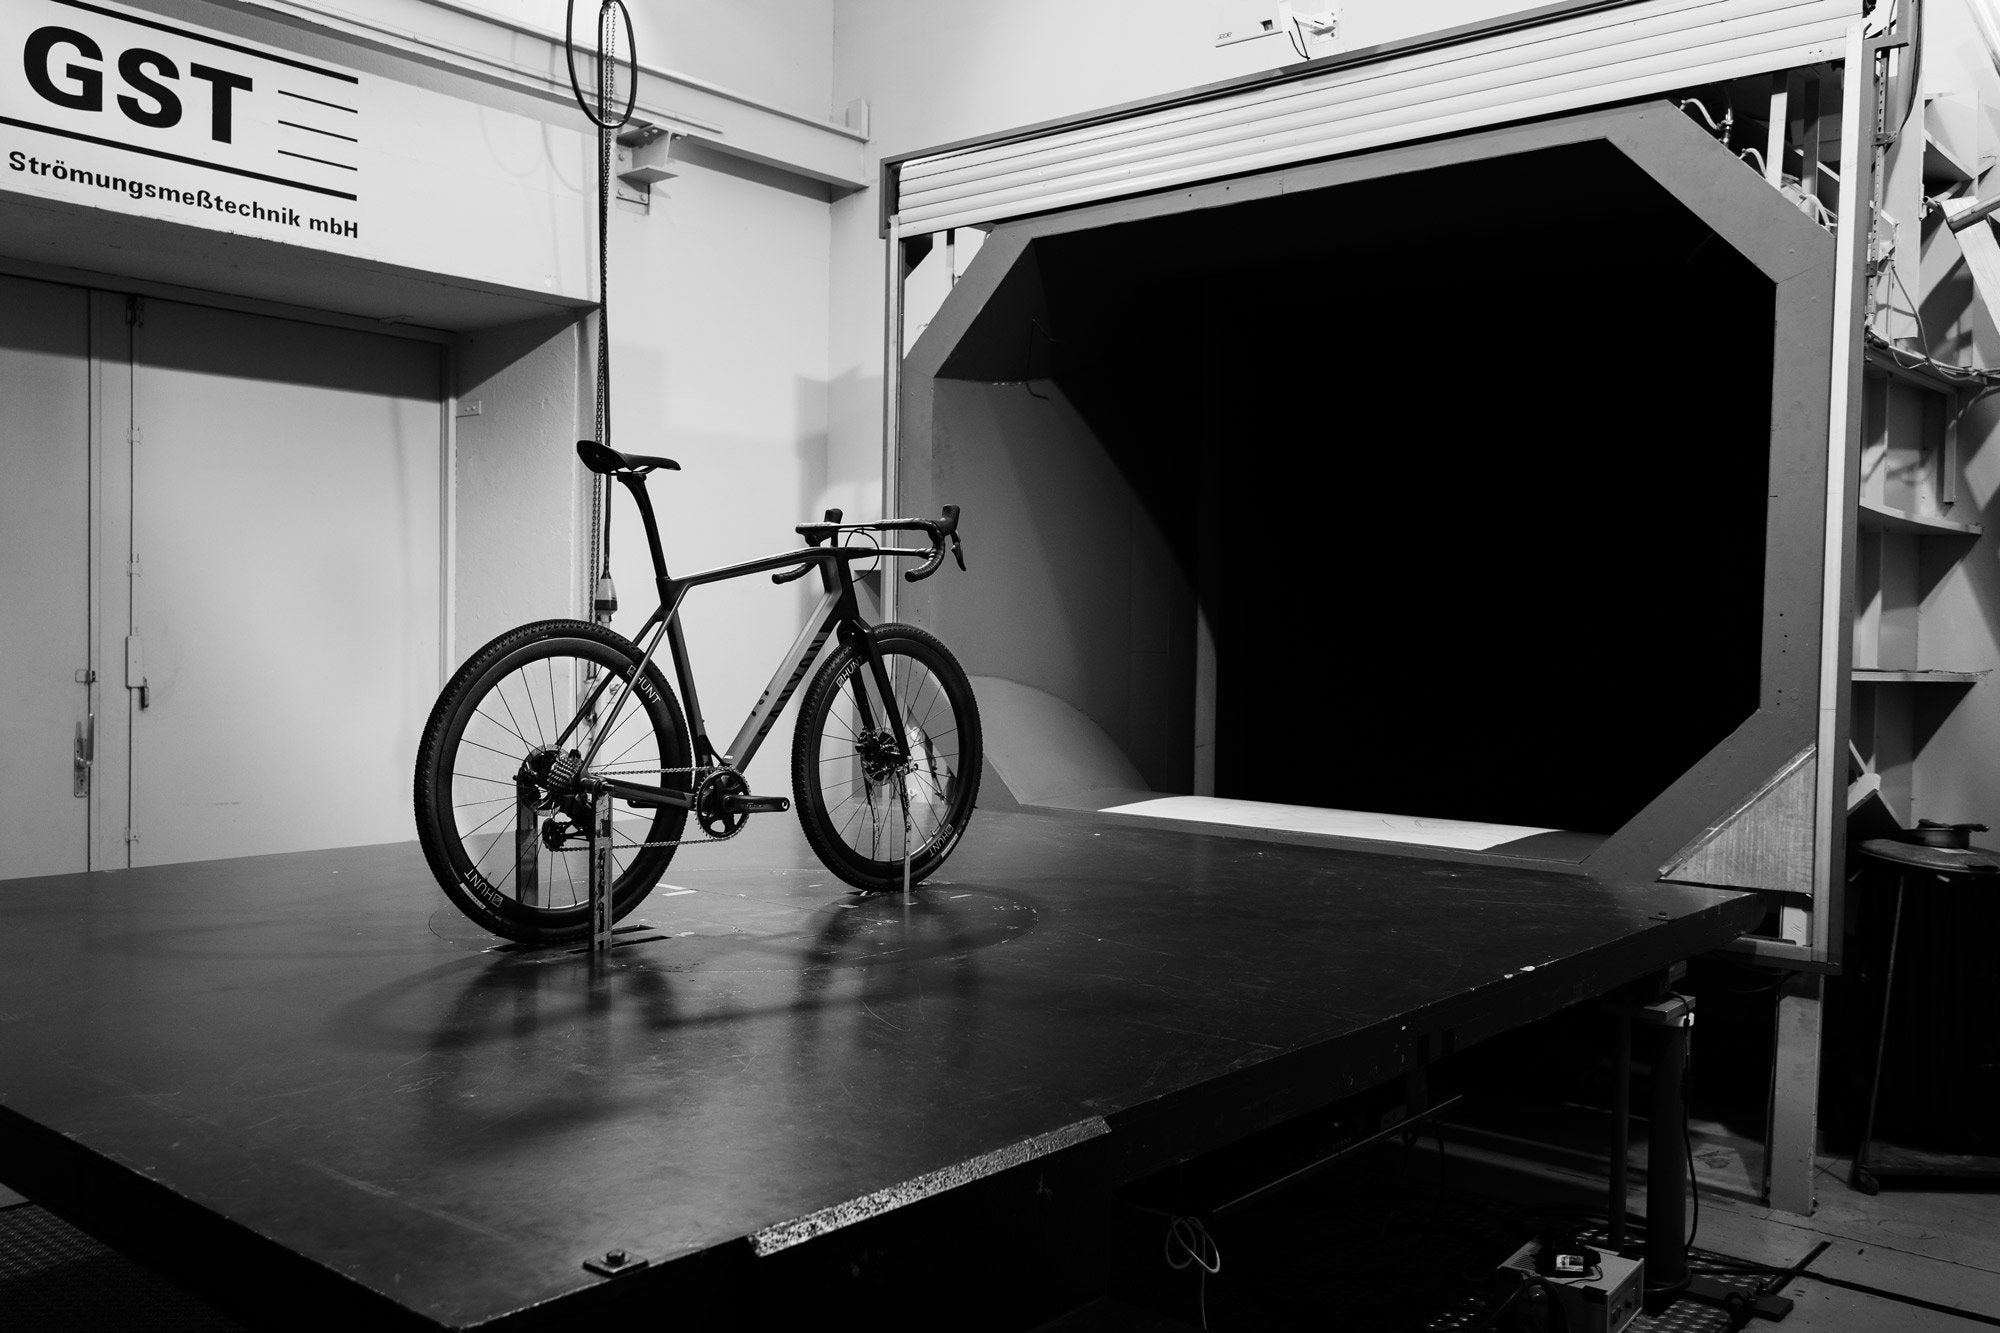 <h1>WIND TUNNEL TESTED</h1><i> Developed by Luisa Grappone, with years in the wind tunnel spent testing every last detail. We've left no stone unturned in designing this wheelset from the ground up to be very fastest in the world within its class.</i>